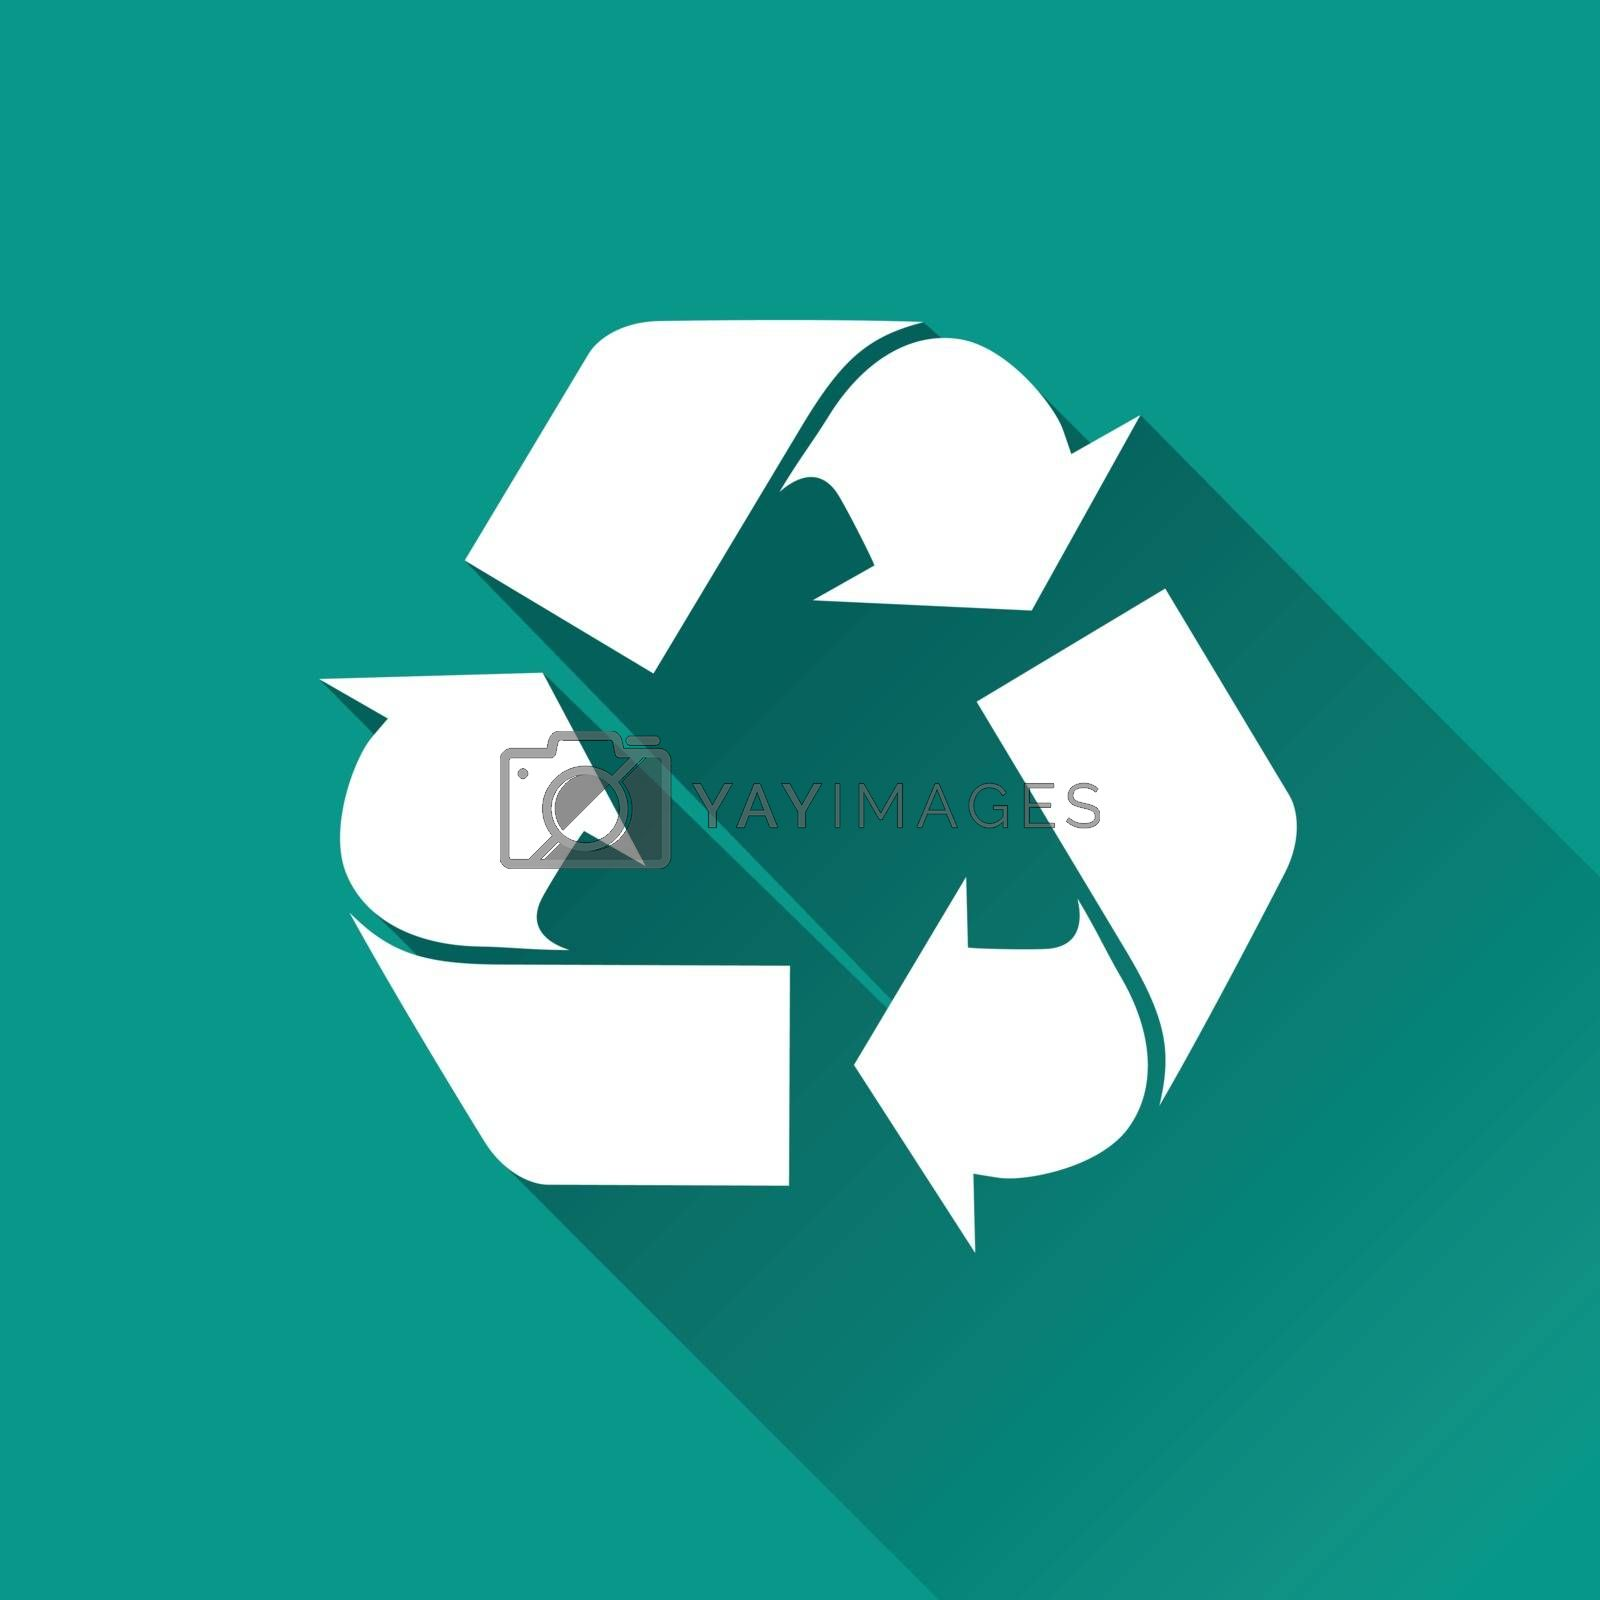 Royalty free image of recycle flat design icon by nickylarson974